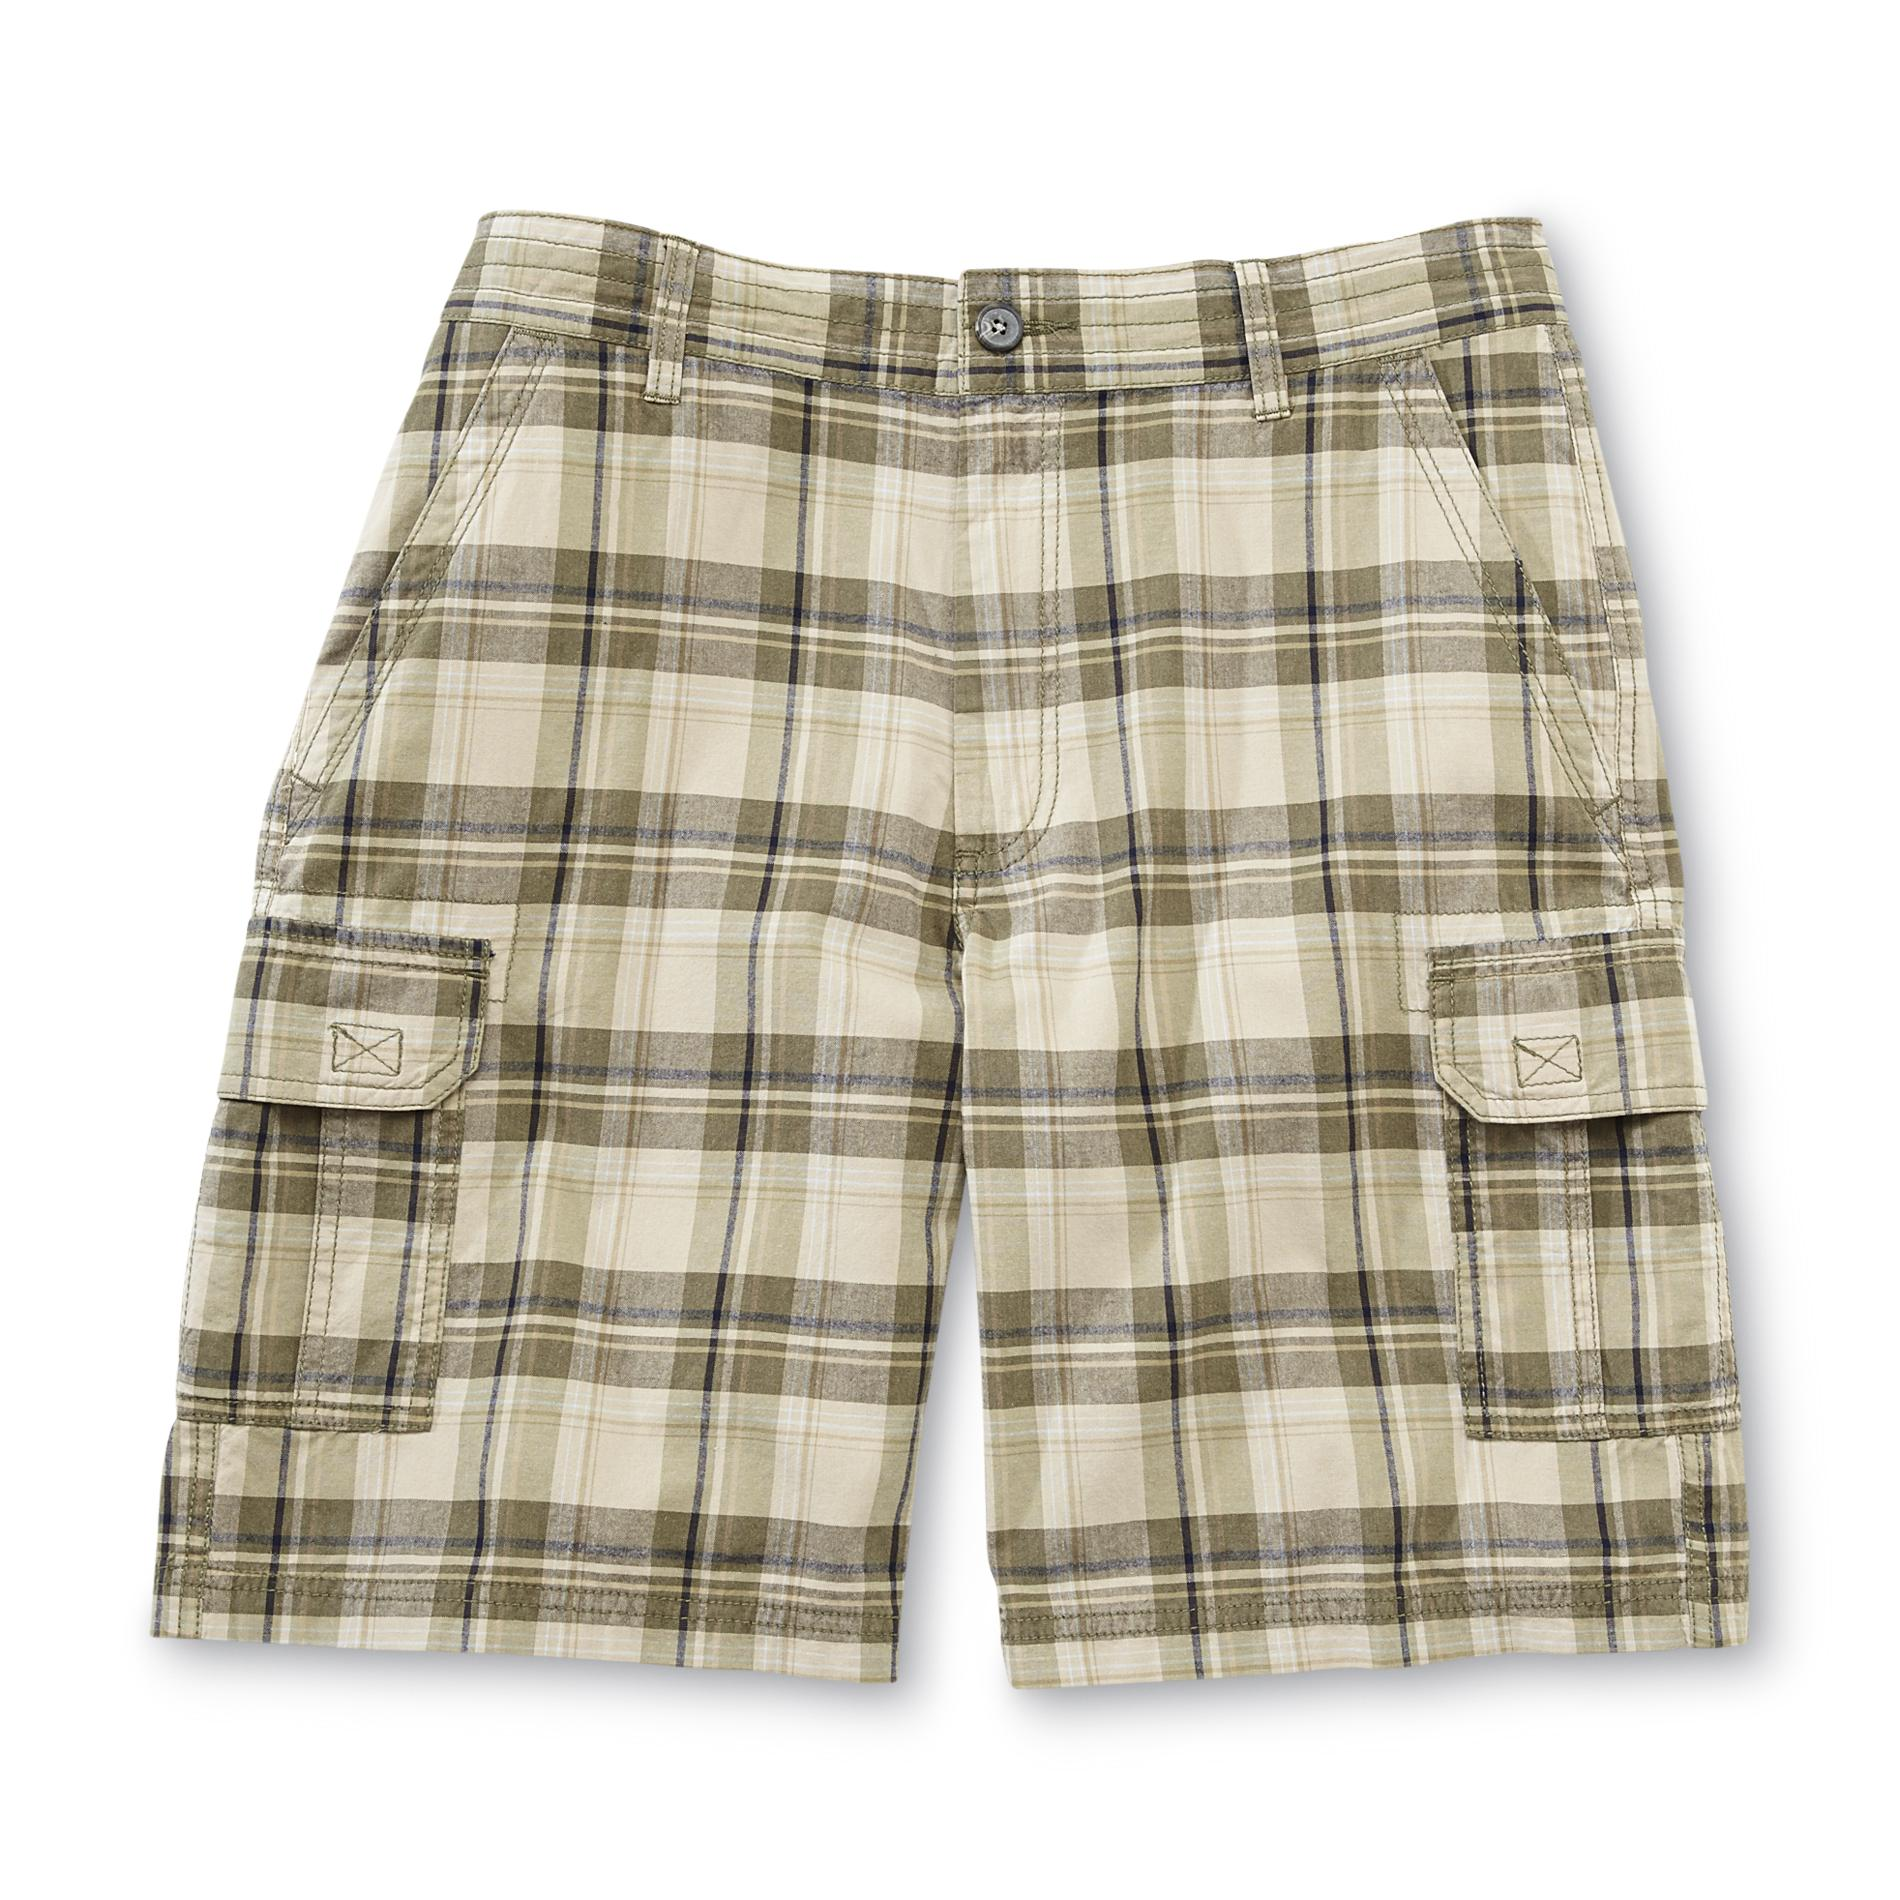 Men's Big & Tall Cargo Shorts - Plaid